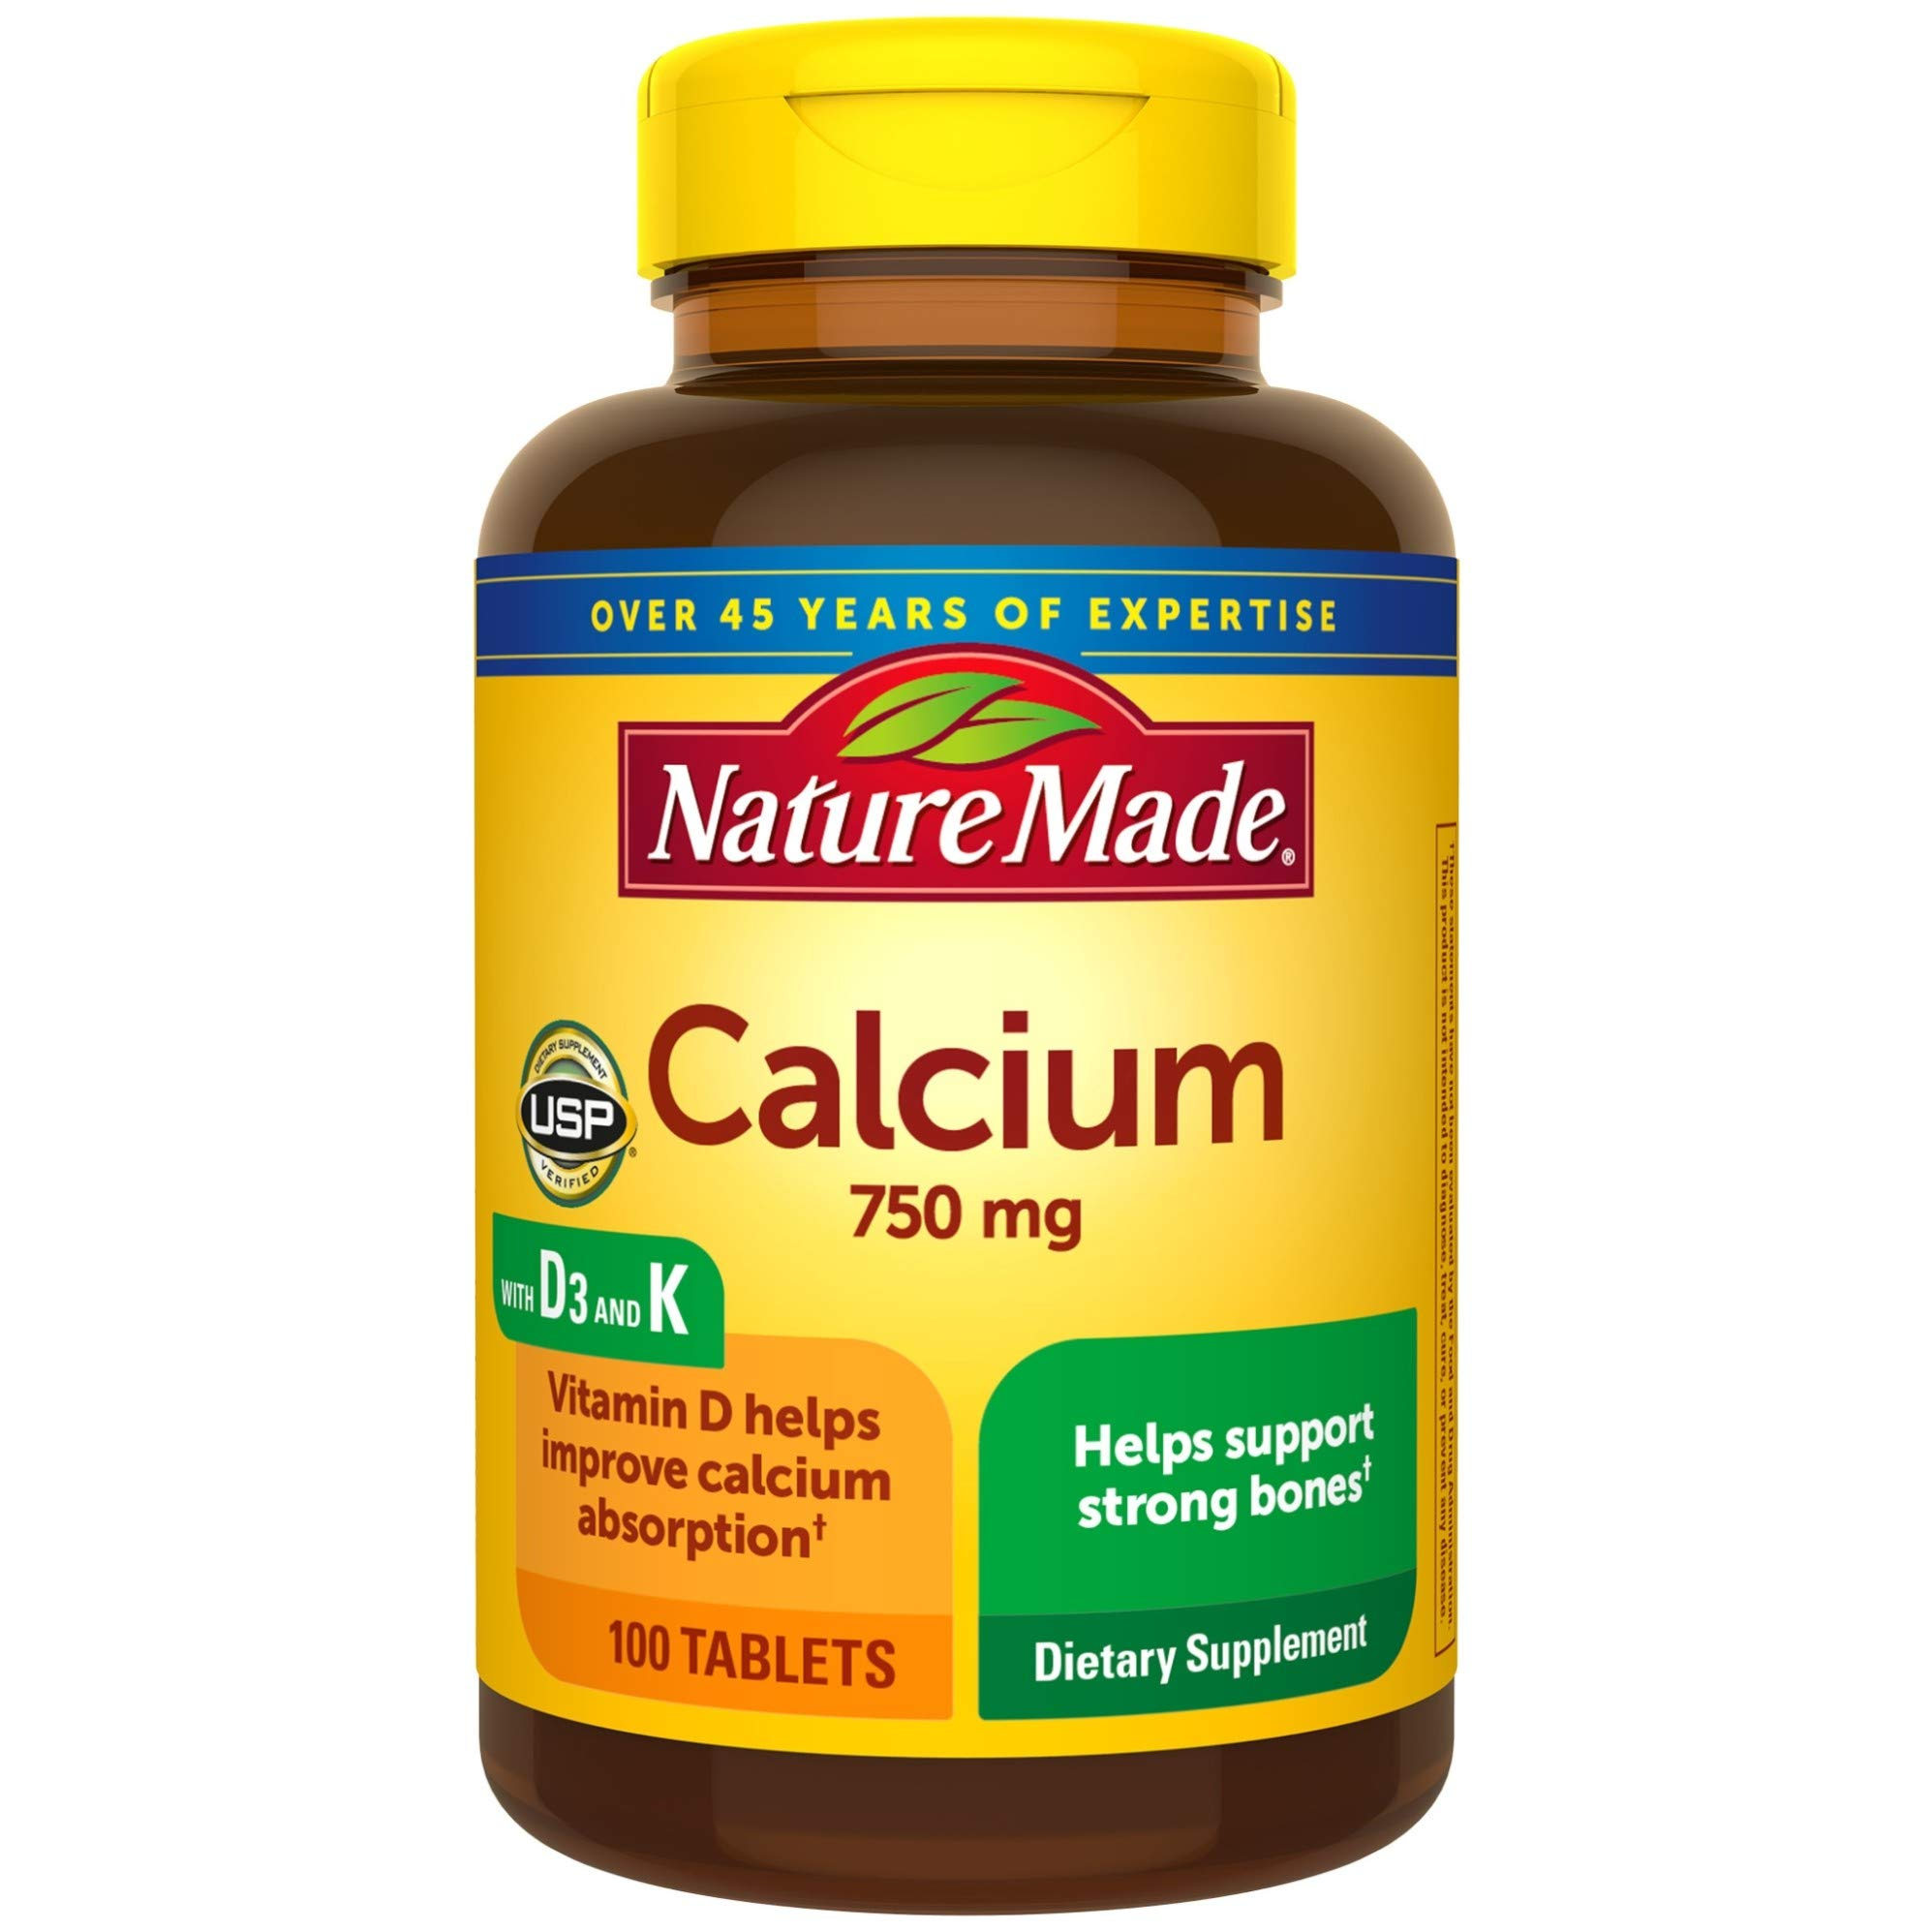 Nature Made Calcium 750 mg with Vitamin D3 and K helps support Bone Strength, Tablets, 100 Ct